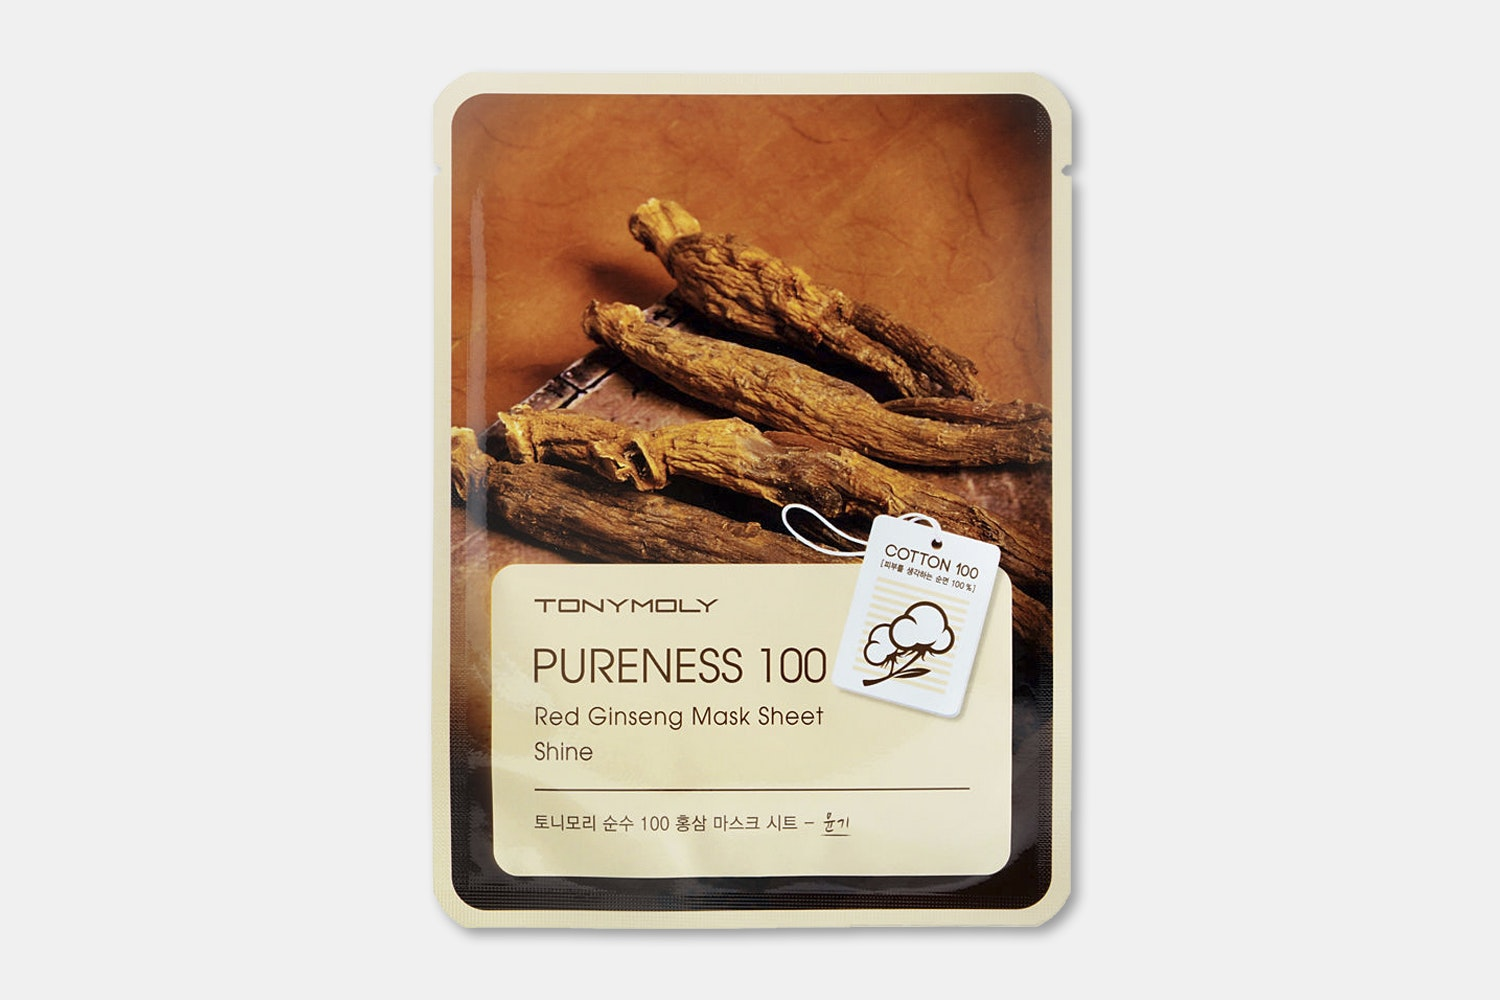 Pureness 100 red ginseng mask